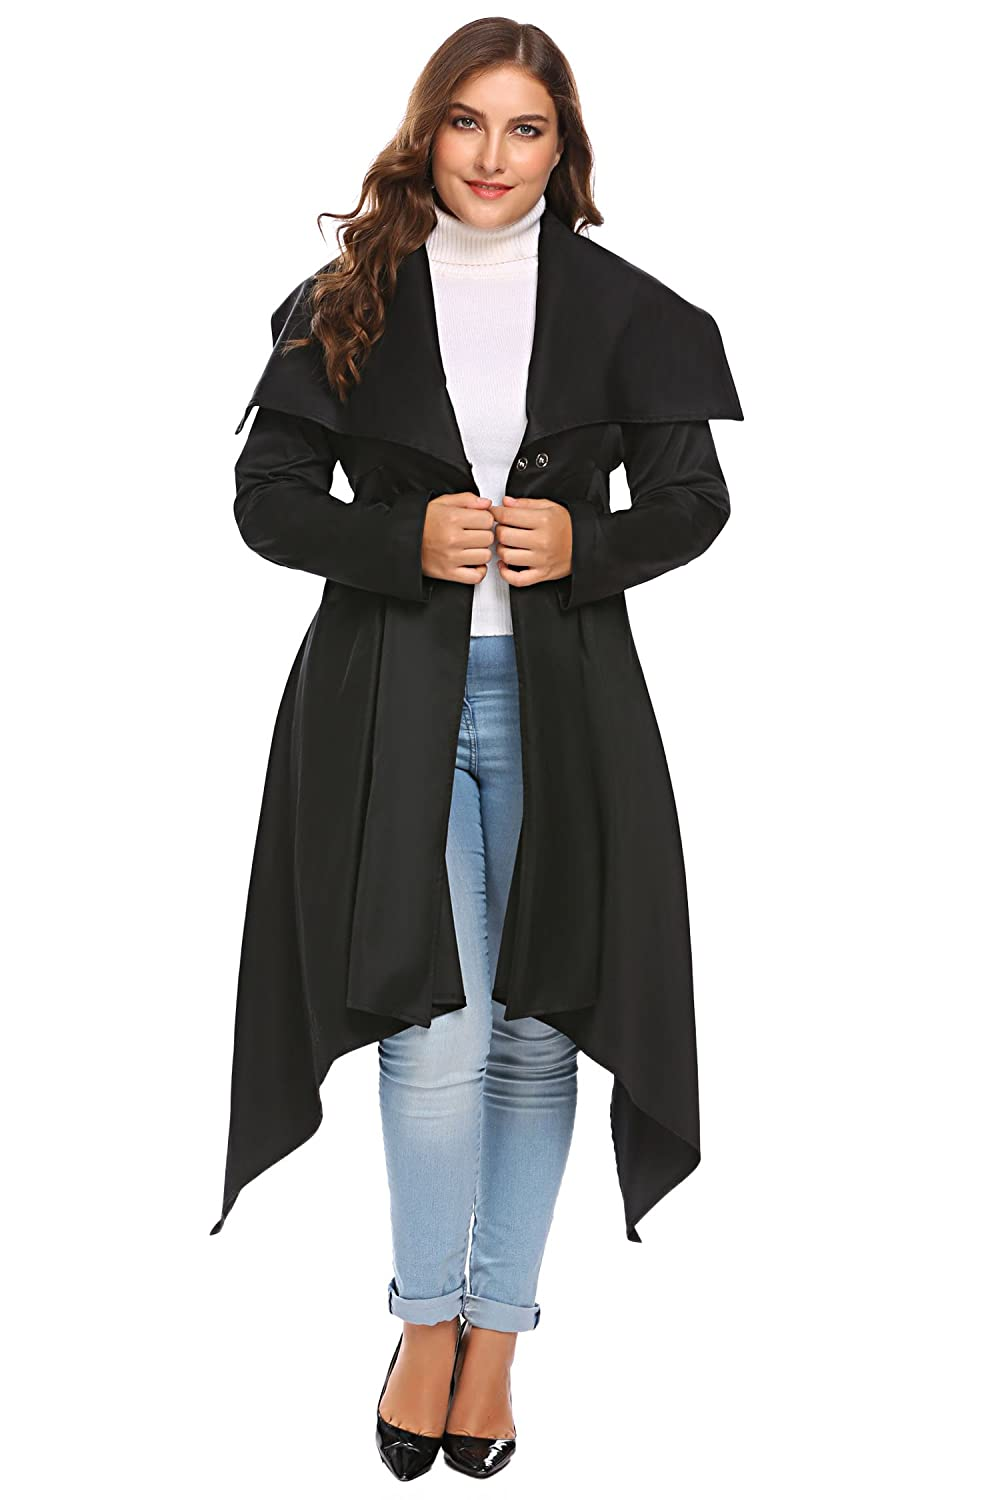 Involand Women Plus Size One-Button Lapel Long Sleeve Asymmetrical Trench Coat #INH017447